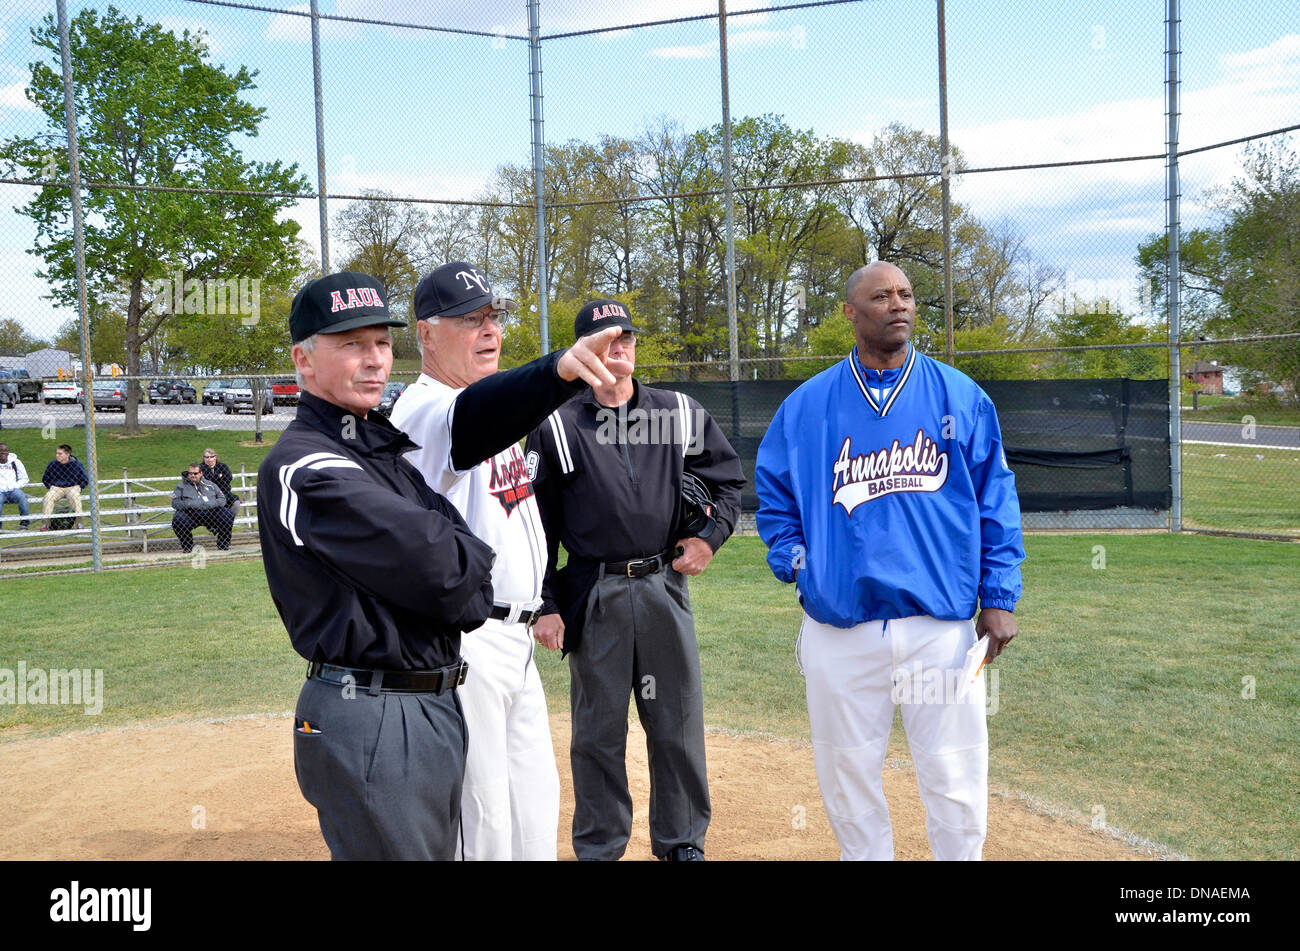 coach explain the field layout to the umpires in a baseball game - Stock Image